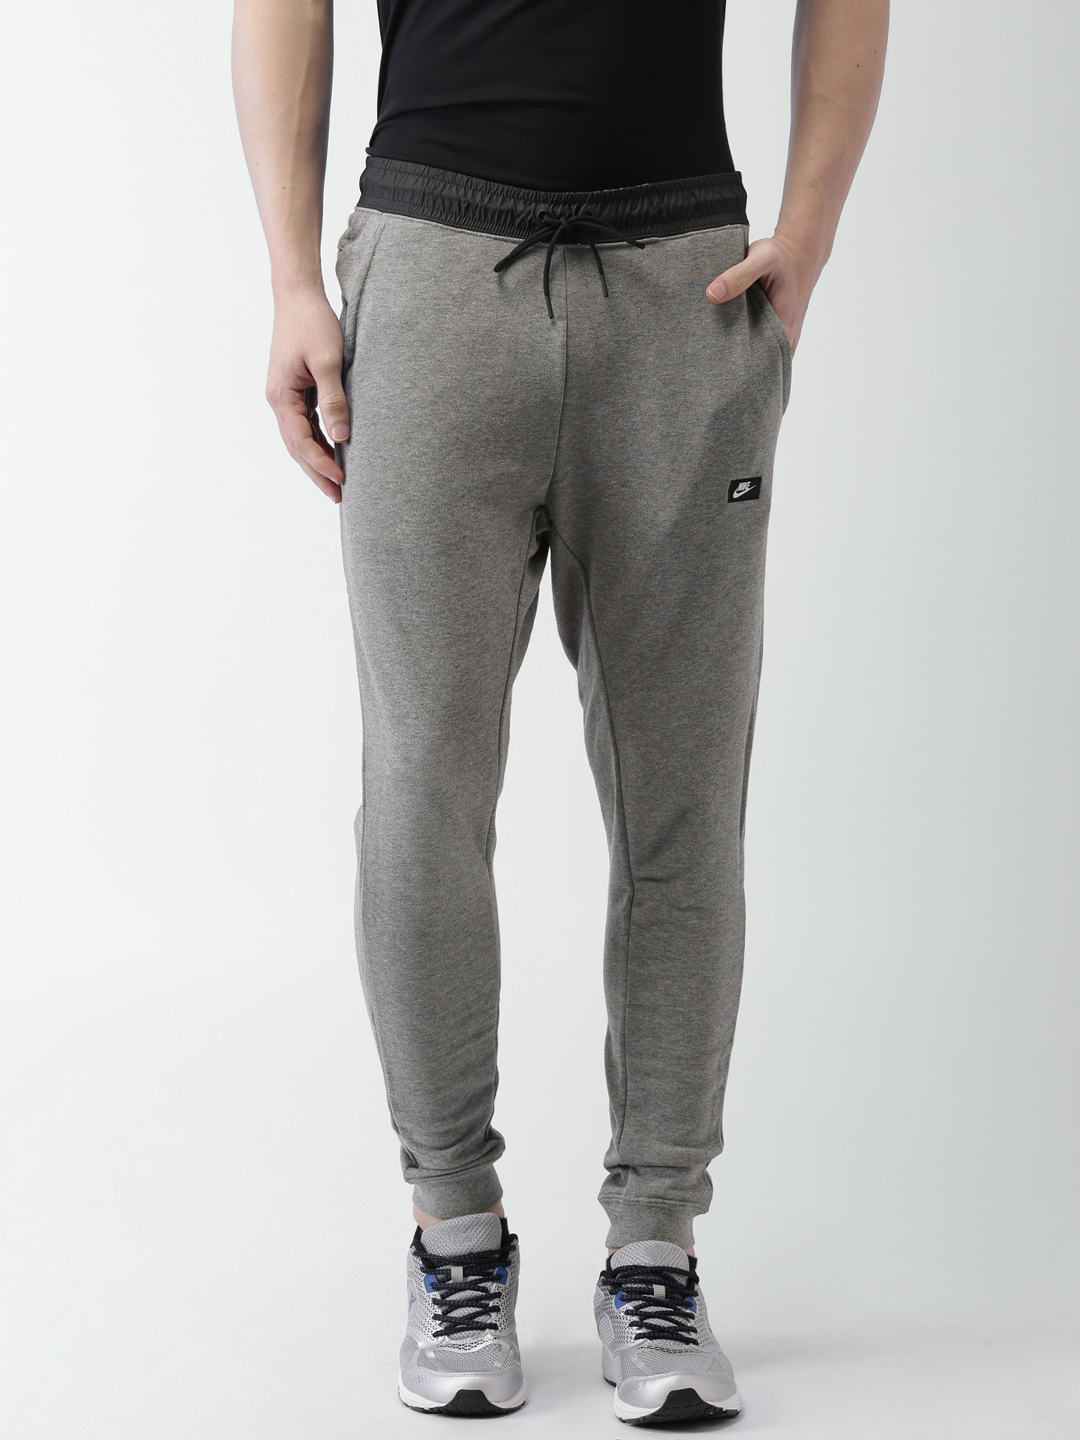 c527d19acc85 Buy Nike Grey Melange AS M NSW MODERN JOGGER FT Joggers - Track ...